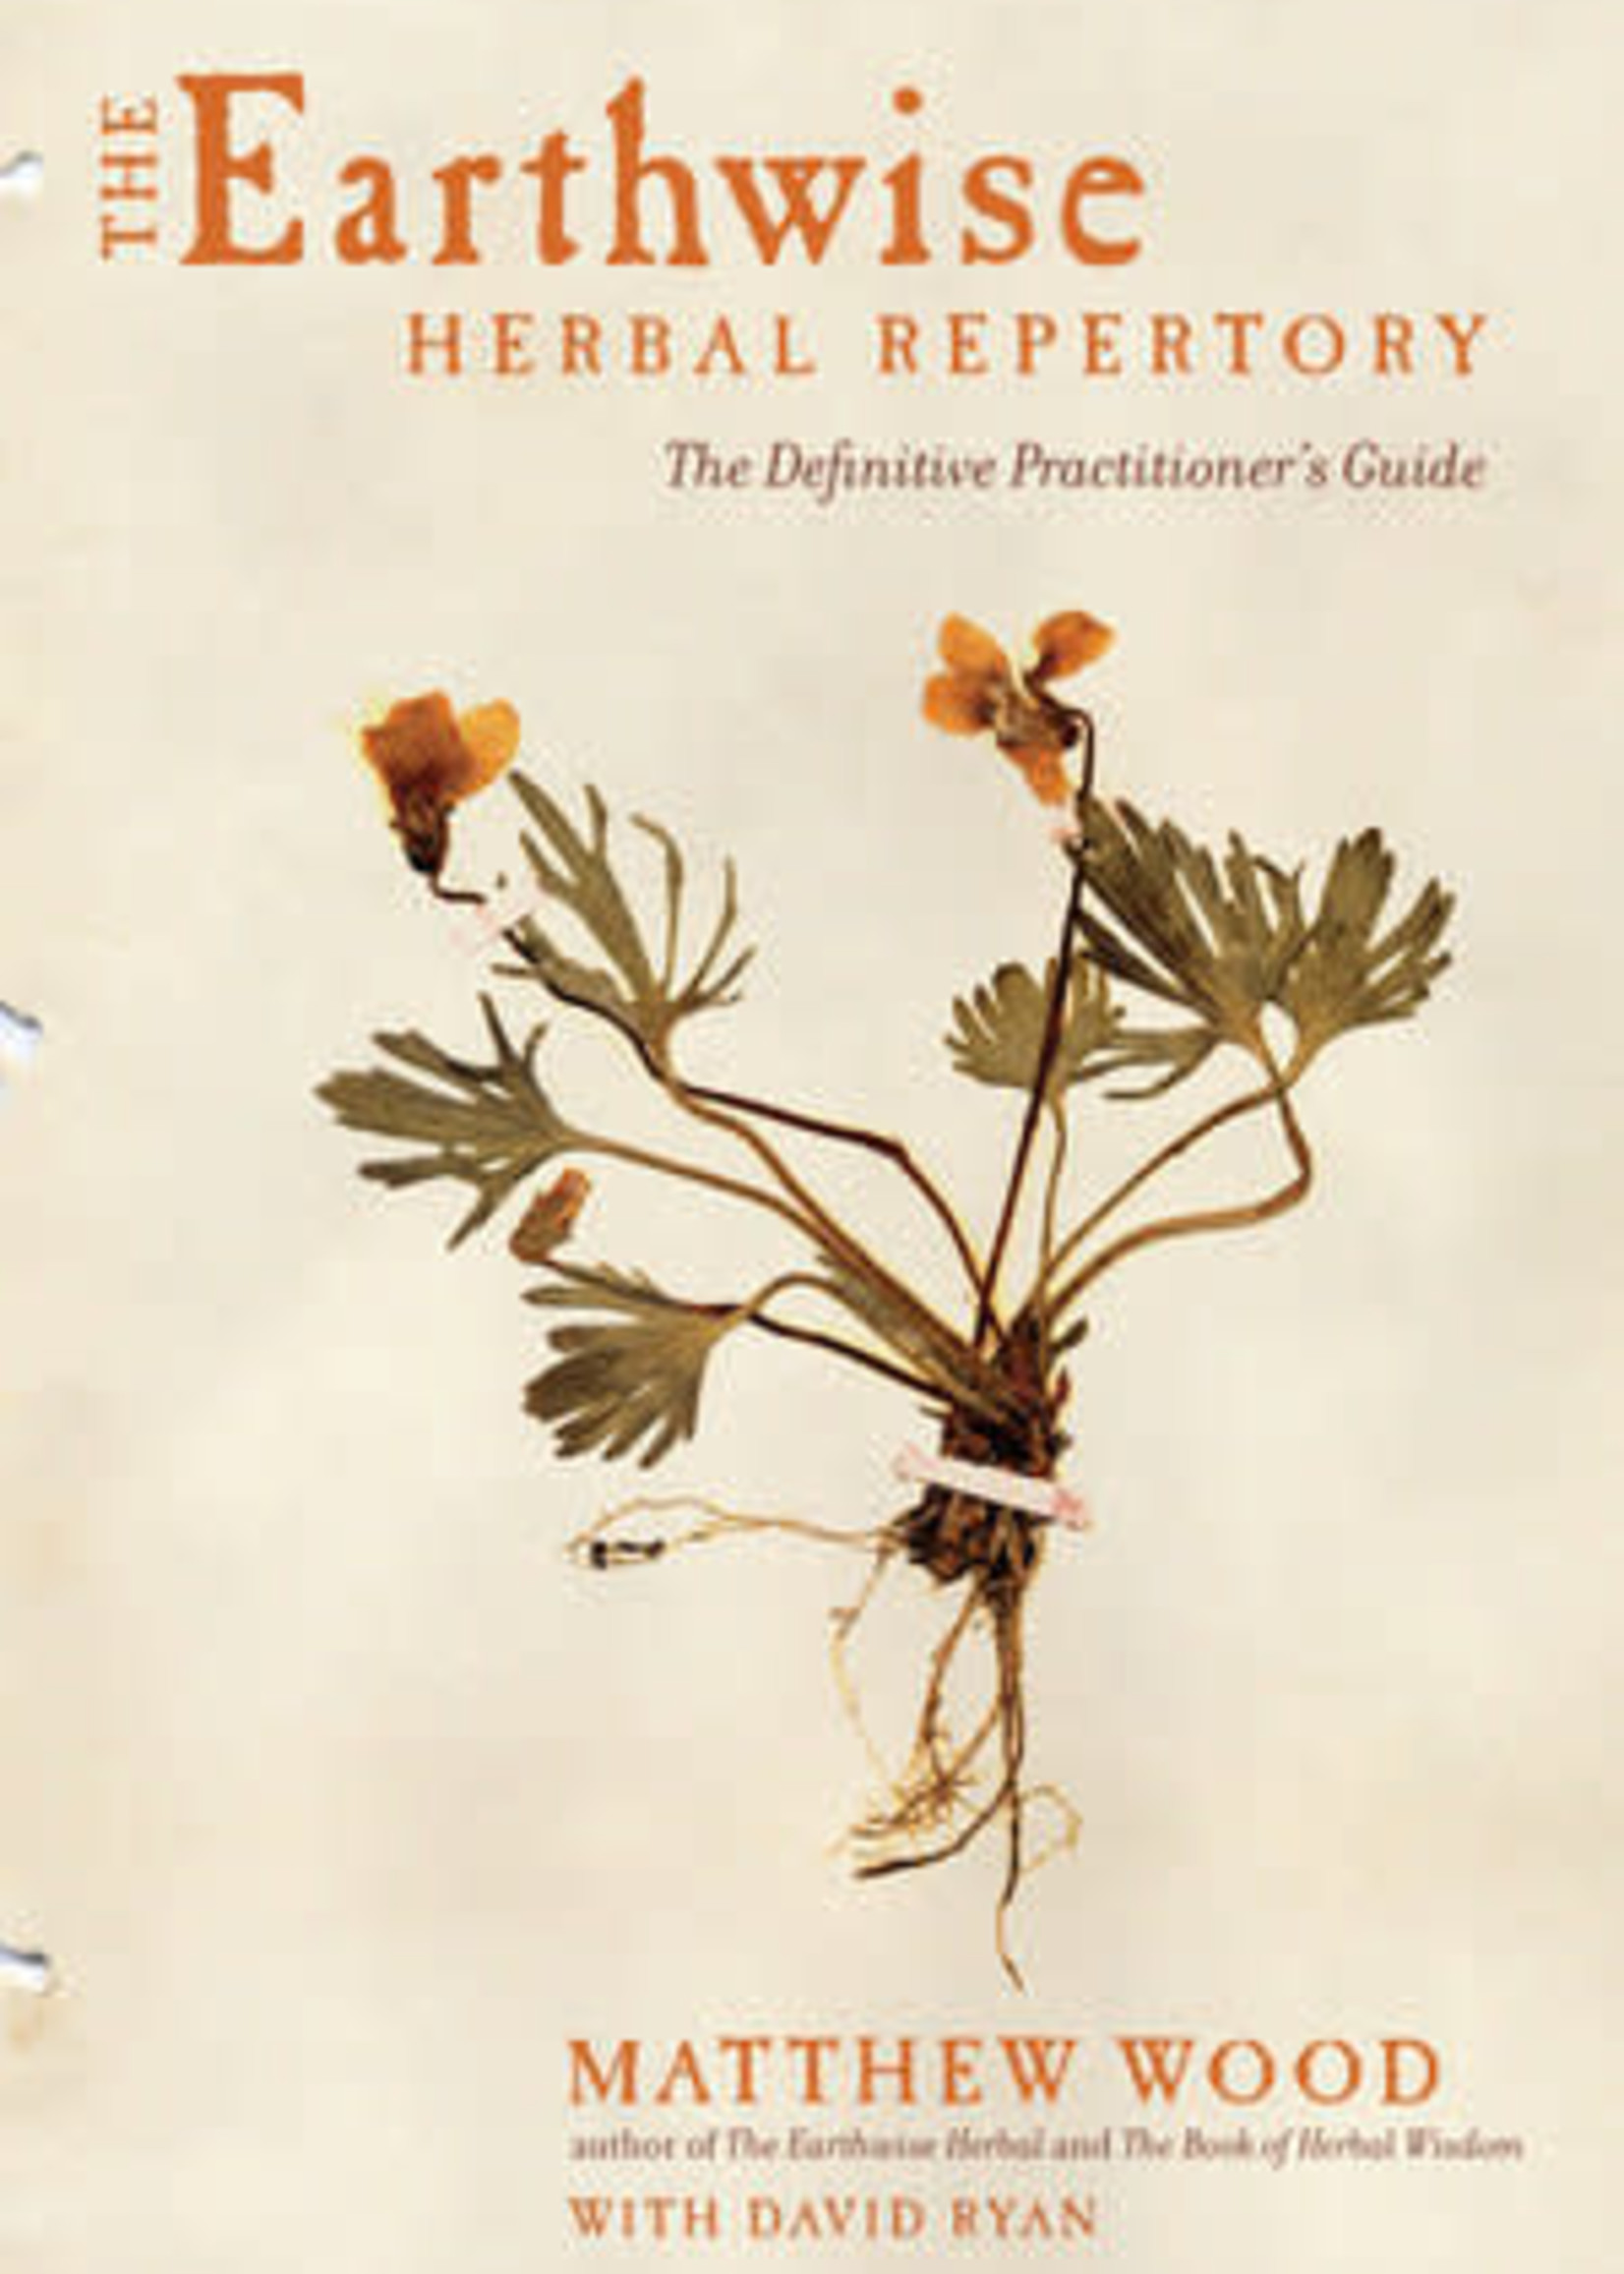 The Earthwise Herbal Repertory THE DEFINITIVE PRACTITIONER'S GUIDE By MATTHEW WOOD Contribution - by David Ryan